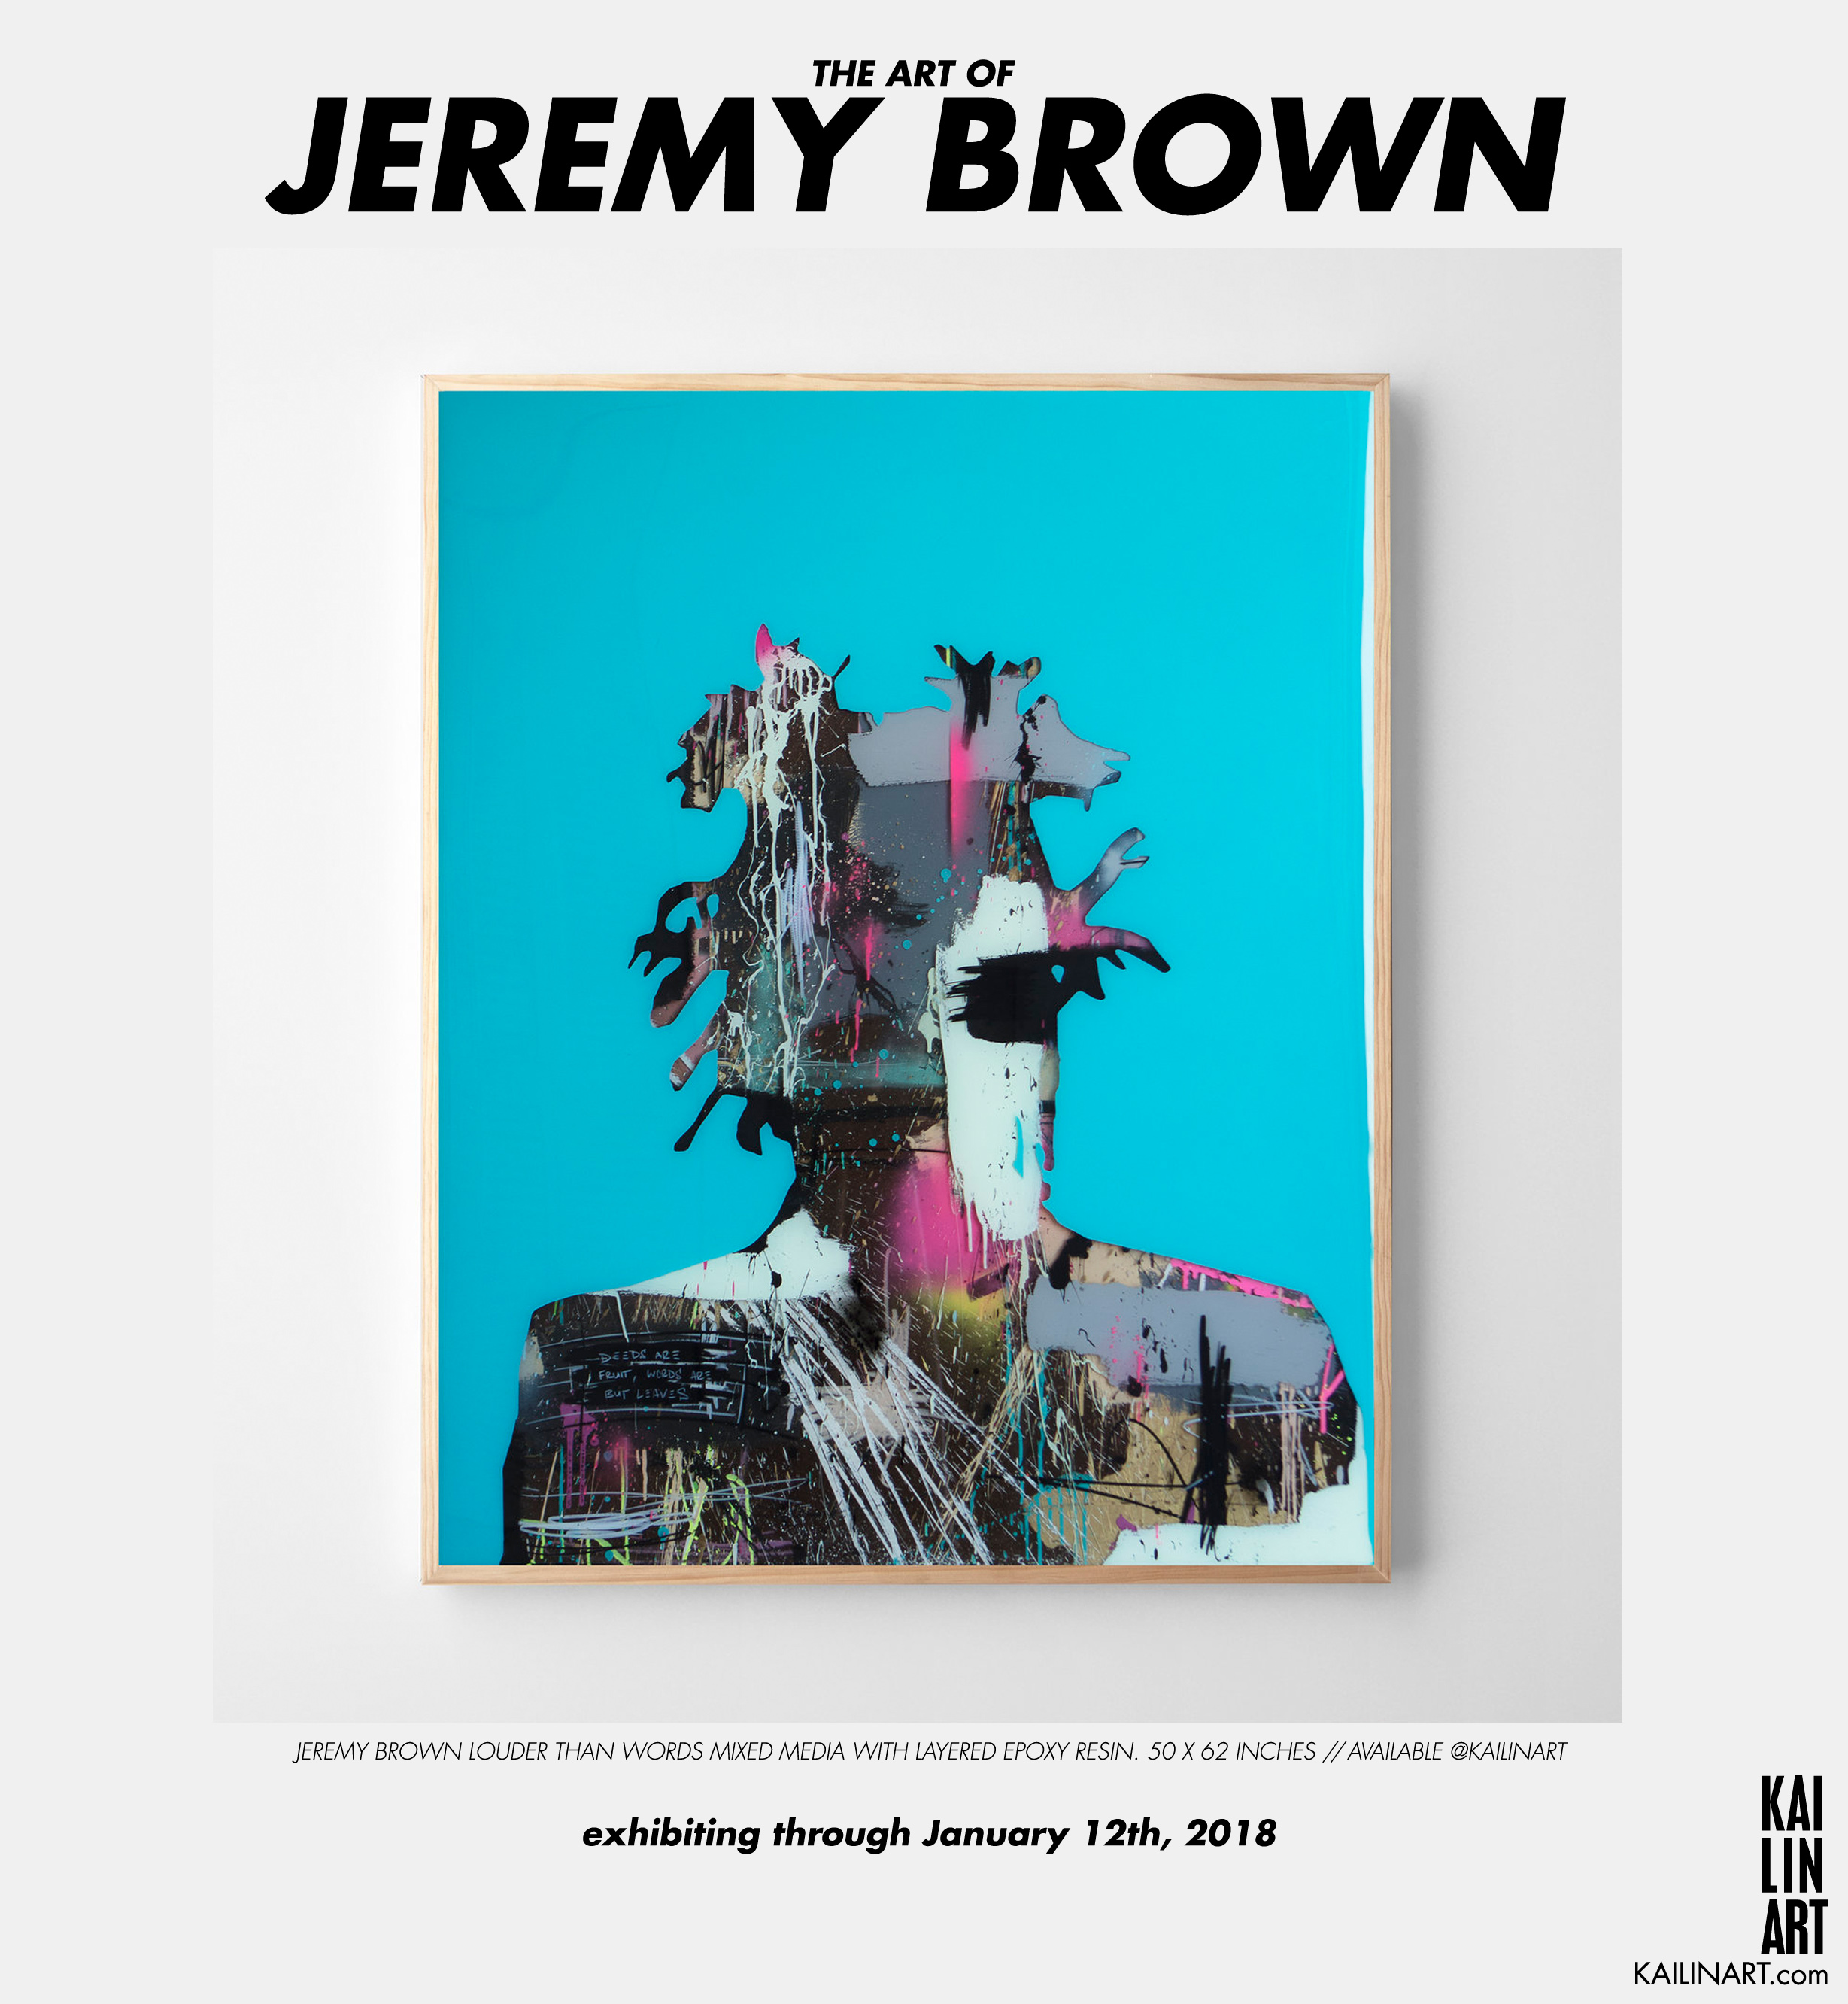 THE ART OF JEREMY BROWN